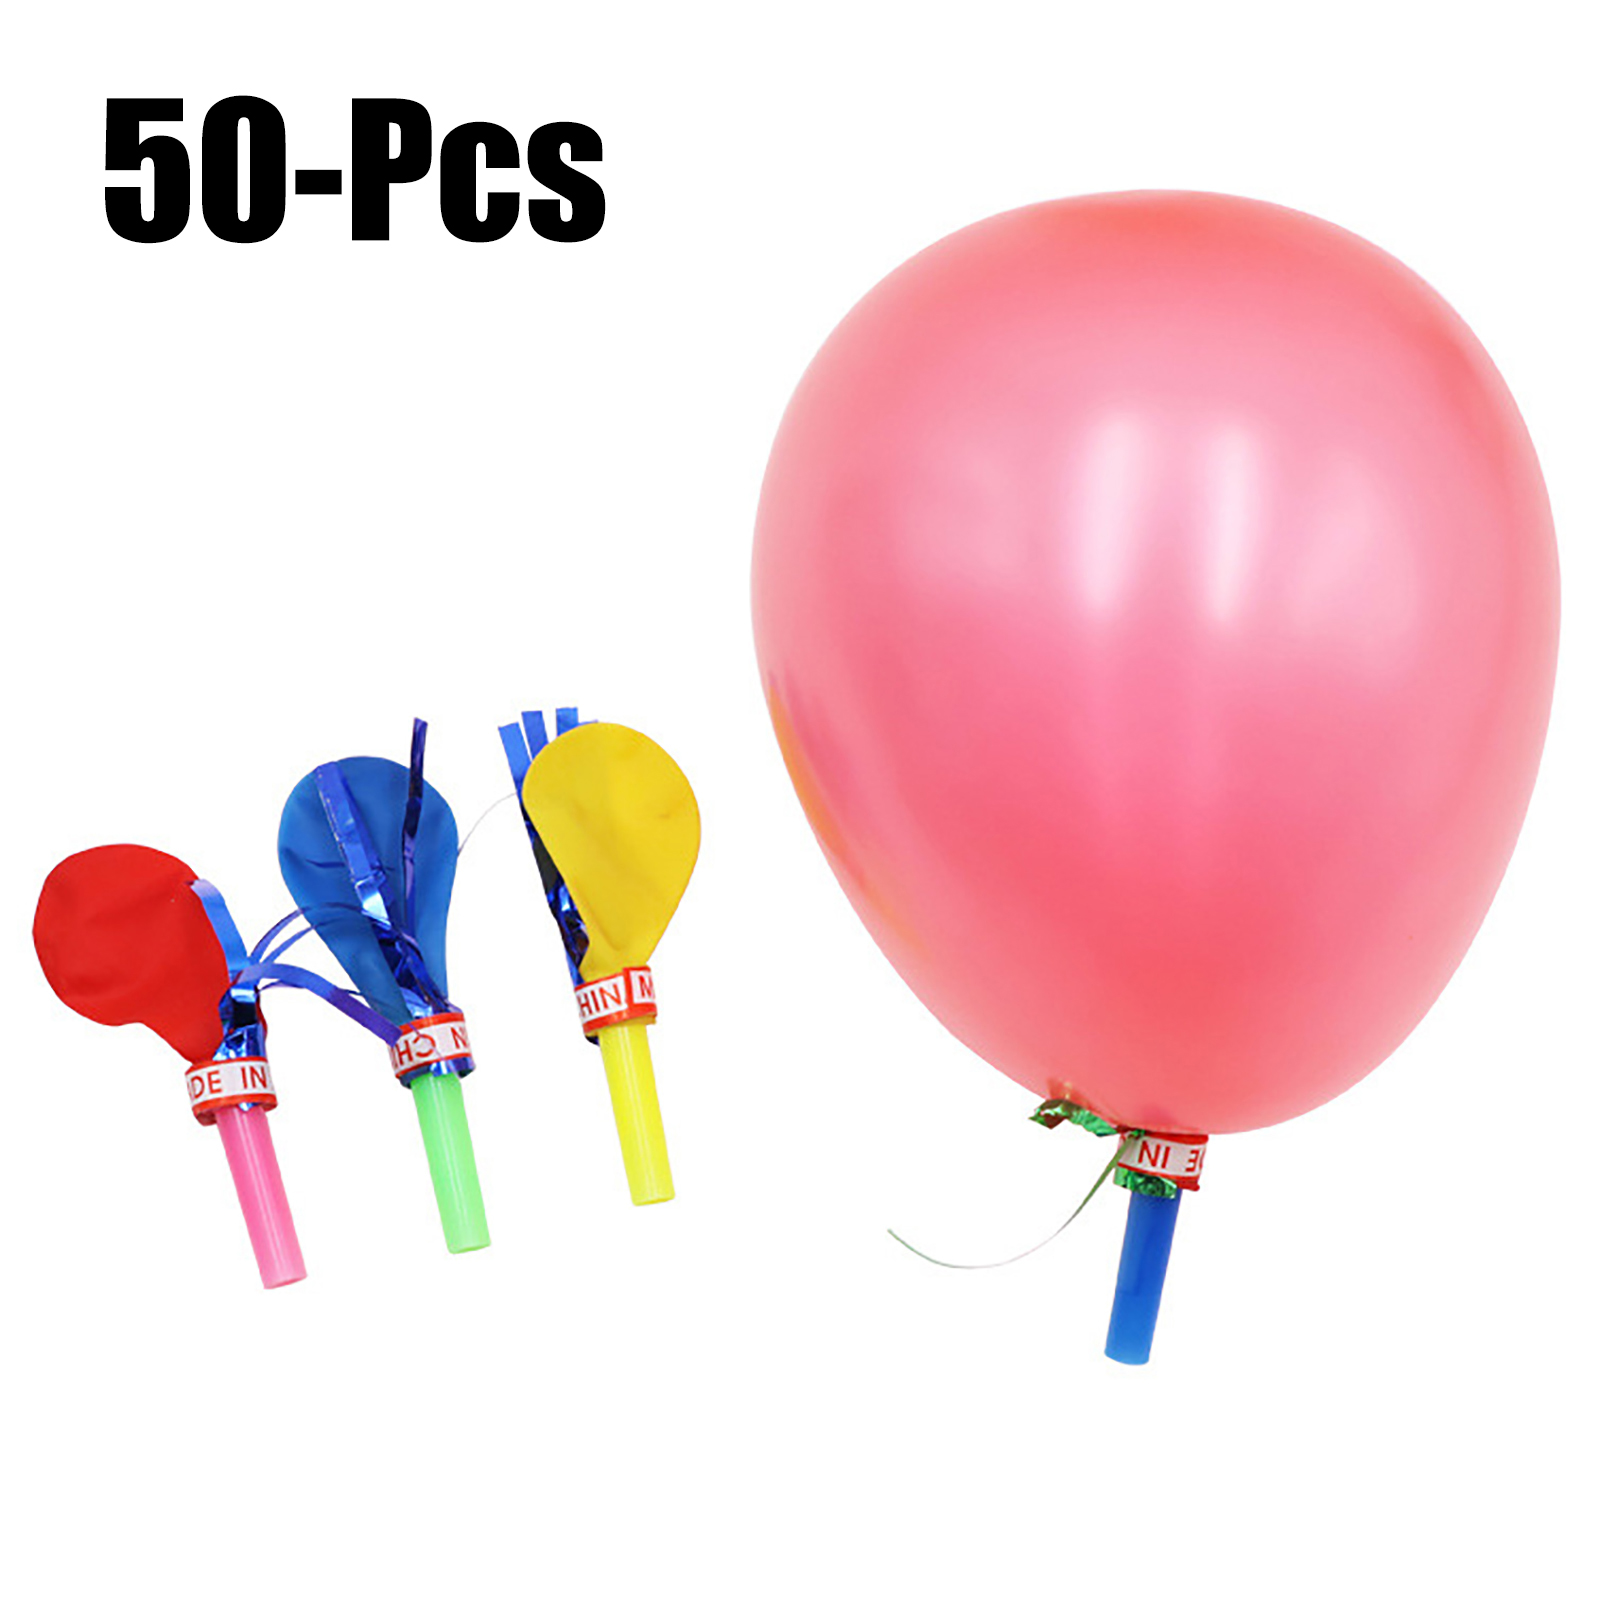 Balloon Whistle Party Balloons With Blowers Birthday Wedding Party Xmas Kids Fun Balloon Blowers Atmosphere Prop Noise Maker Toy Big Clearance Sale Festive & Party Supplies Event & Party